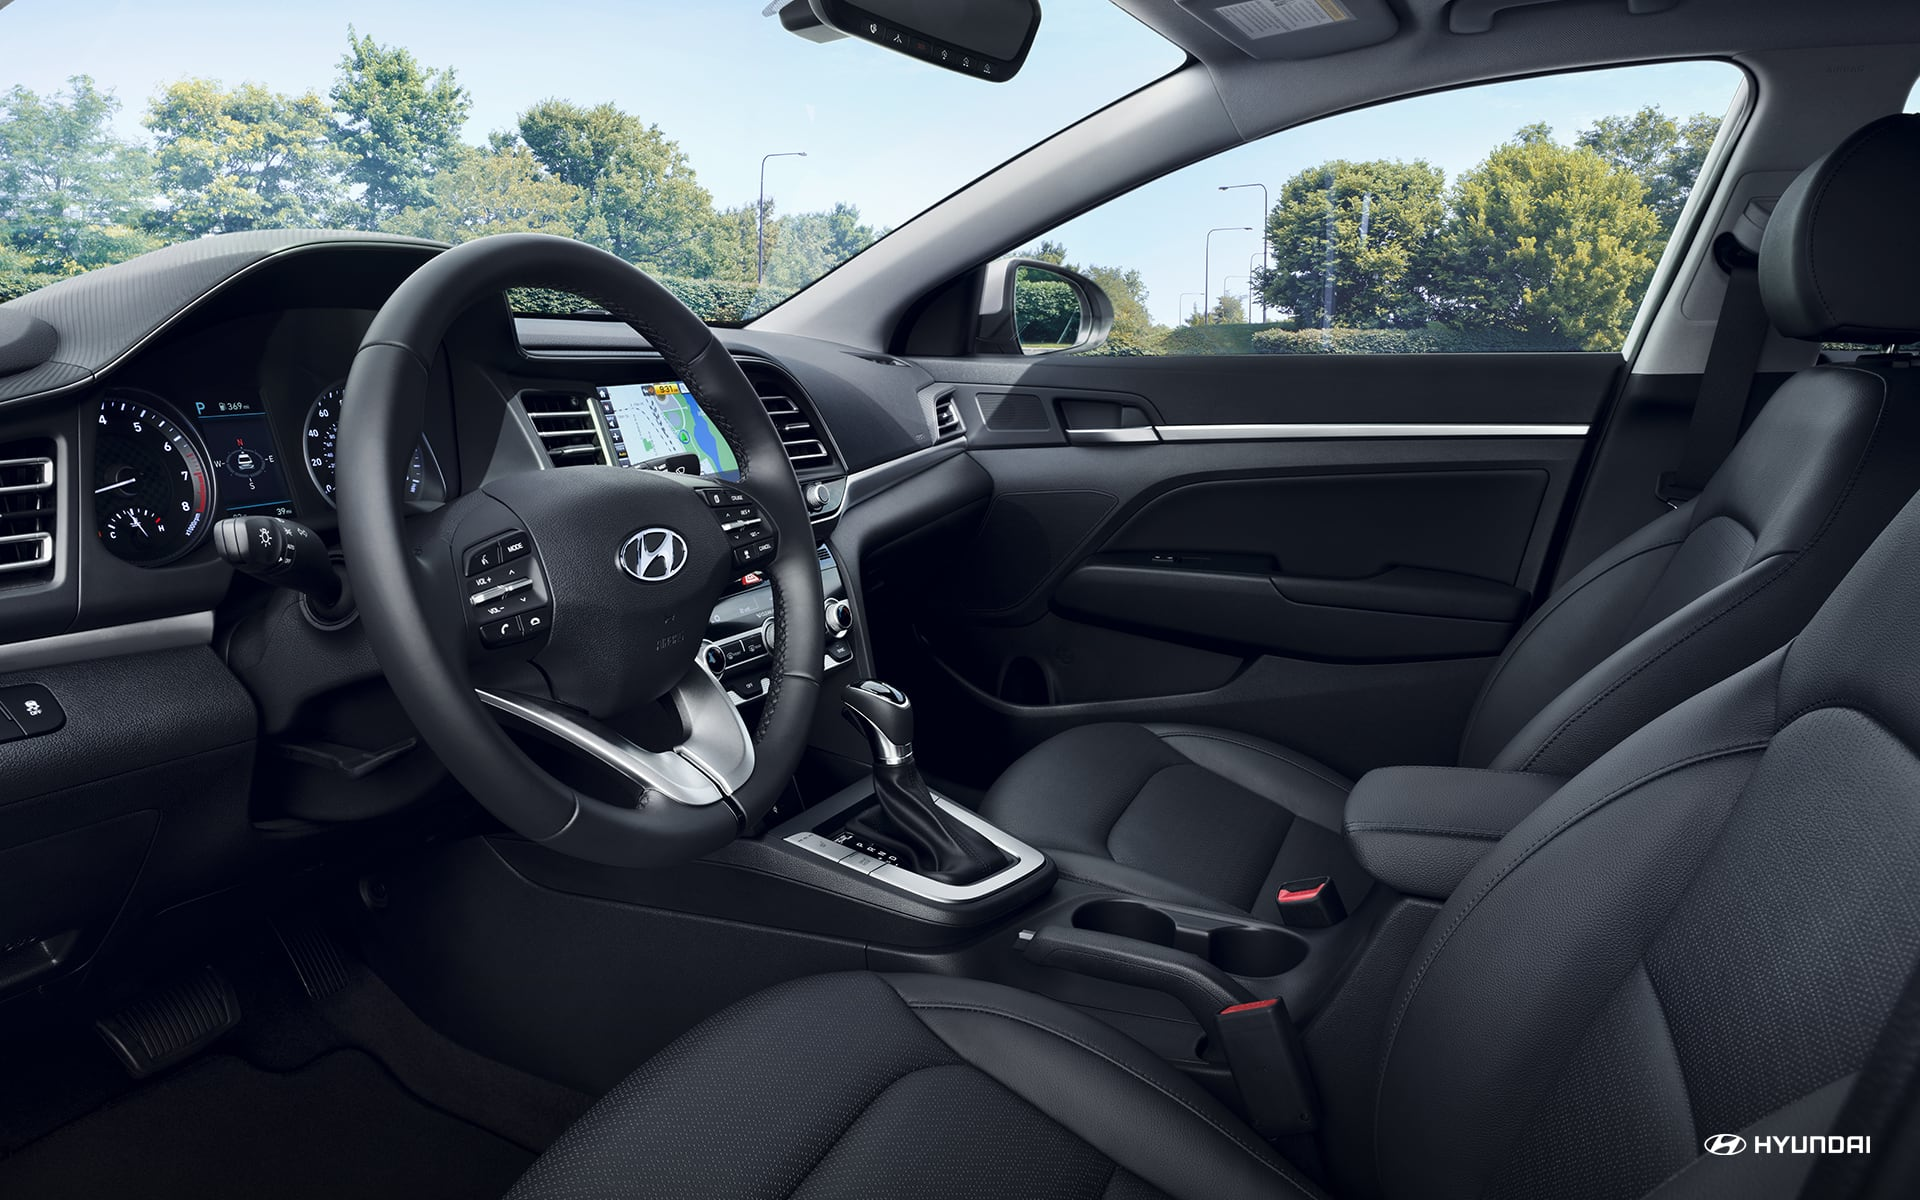 Interior of the 2019 Hyundai Elantra